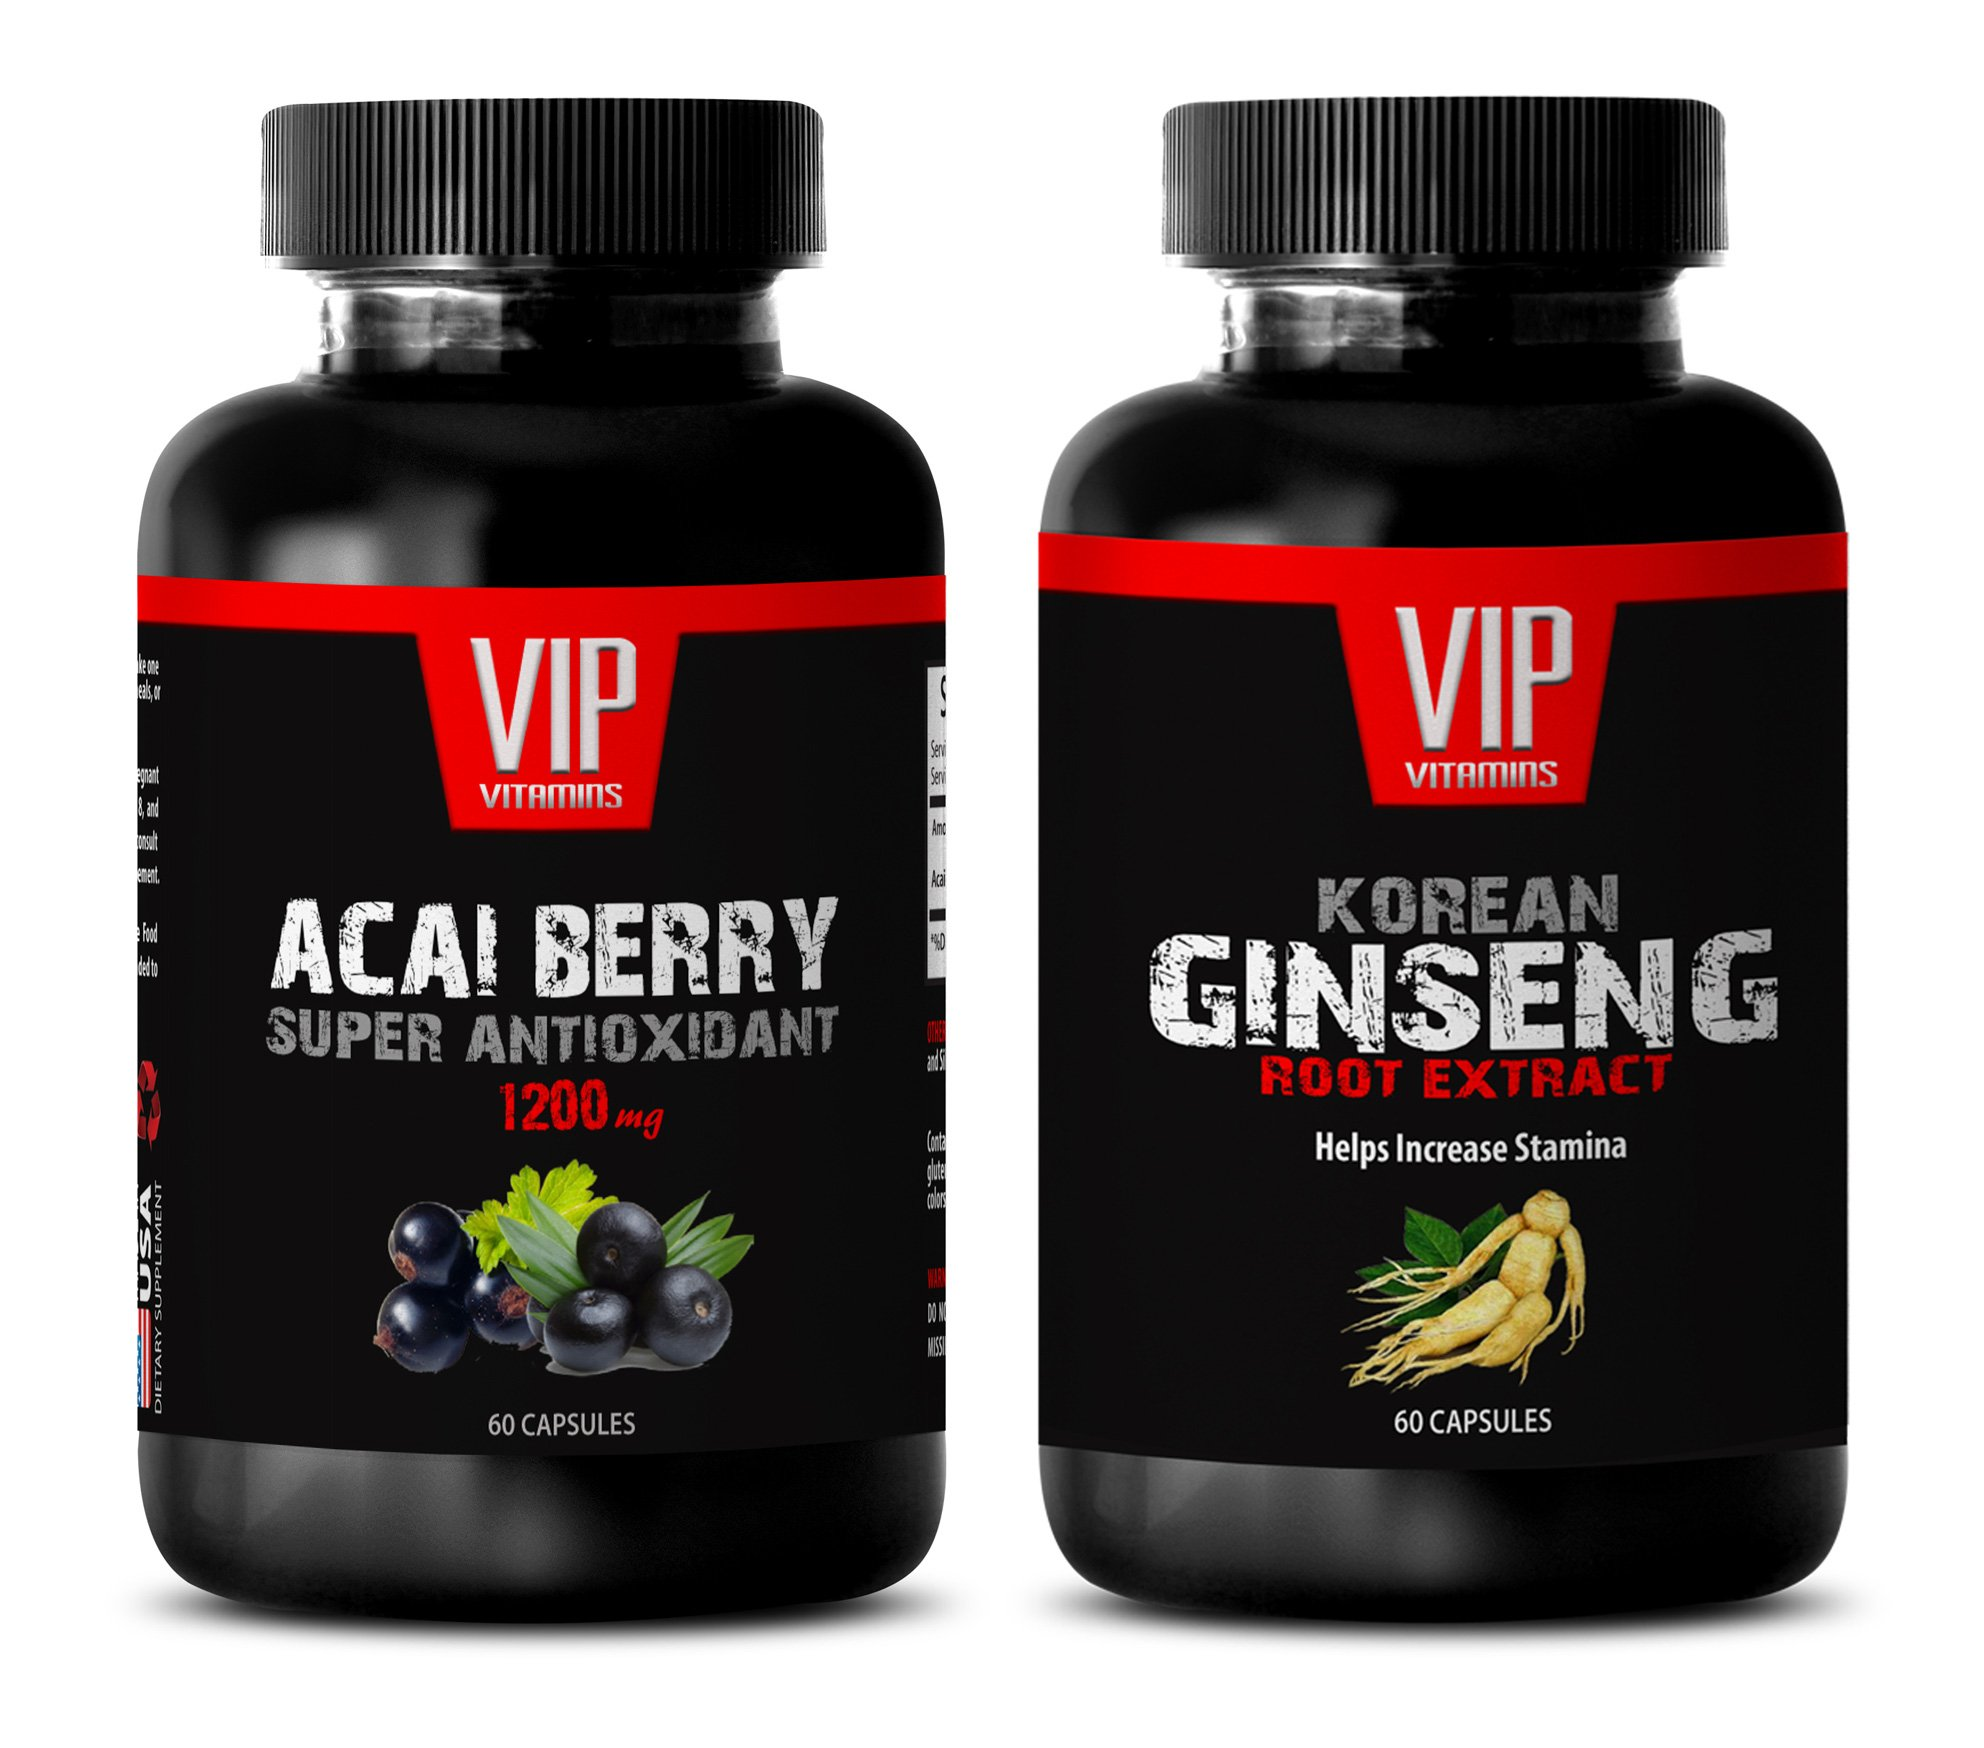 metabolism slow down pills - ACAI BERRY EXTRACT – KOREAN GINSENG EXTRACT - ginseng extract - 2 Bottles Combo (60 Capsules + 60 Capsules)